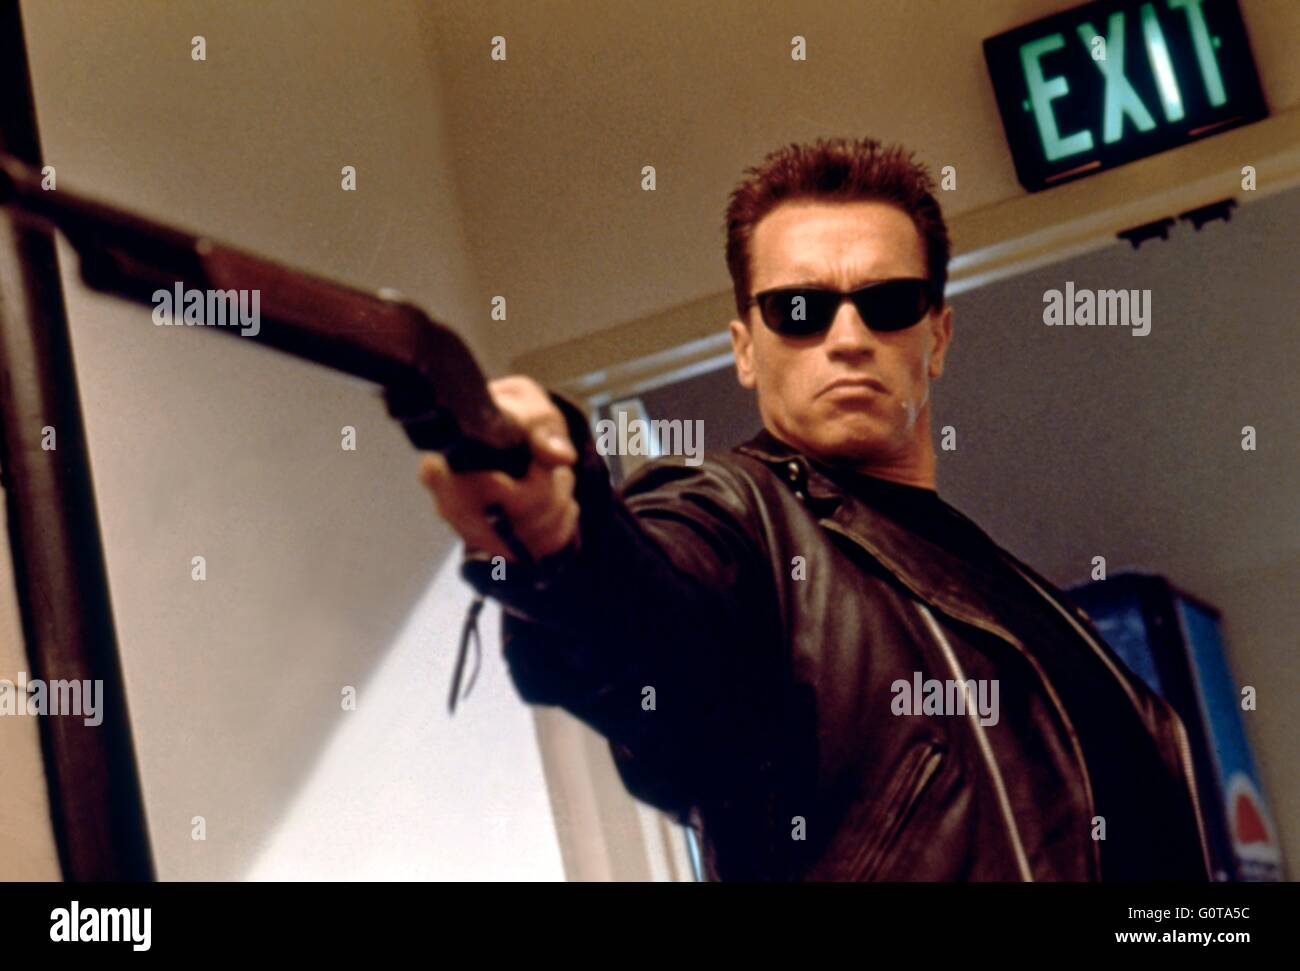 Arnold Schwarzenegger / Terminator 2 : Judgment Day / 1991 directed by James Cameron (Carolco Pïctures) - Stock Image